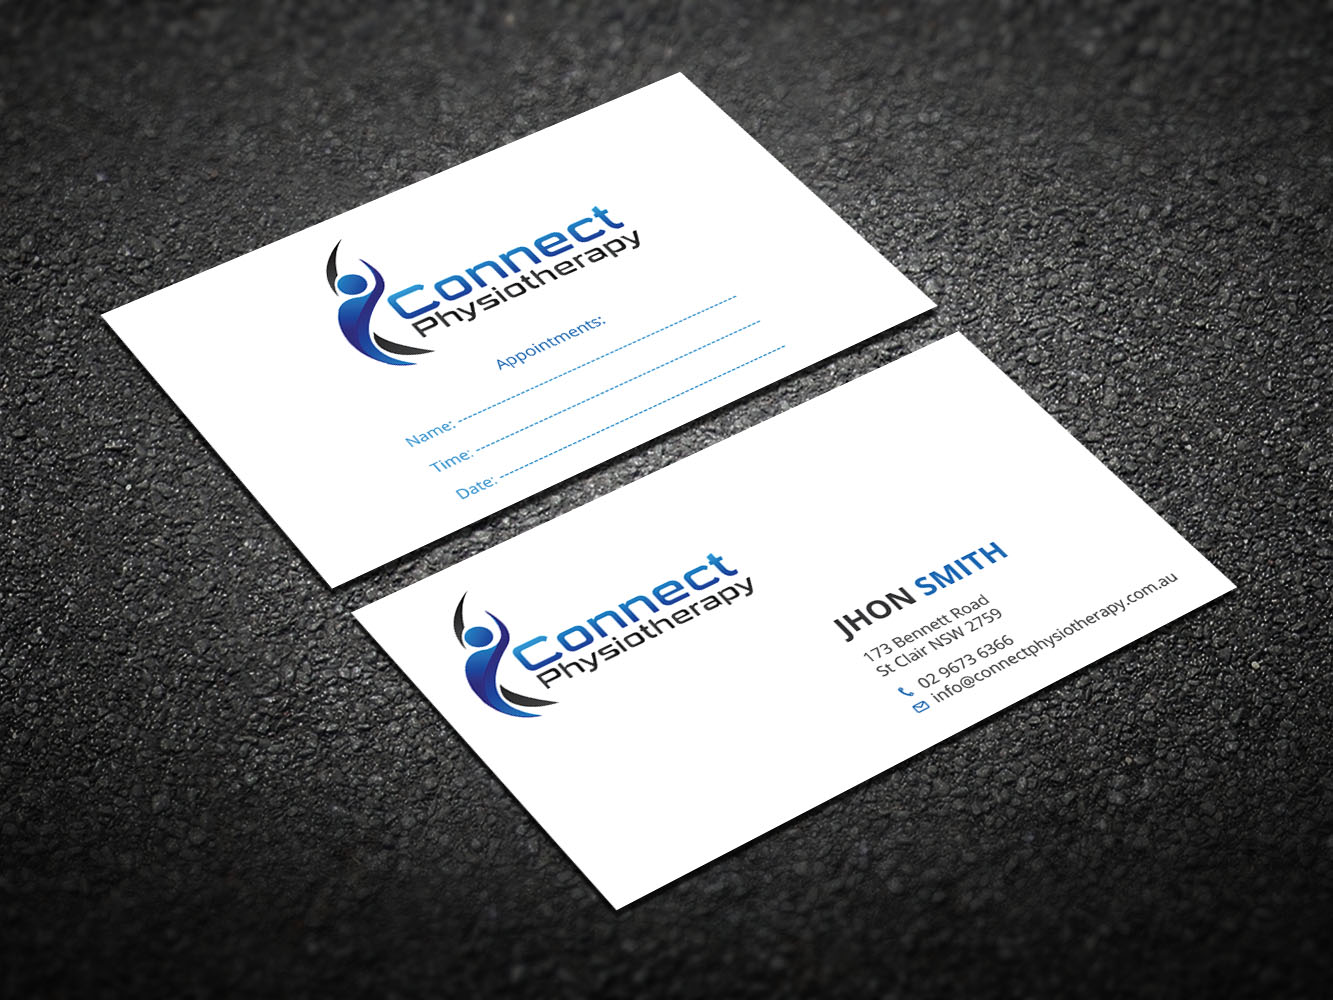 Modern professional business card design for david blackburn by business card design by design xeneration for connect physiotherapy business card design design reheart Choice Image